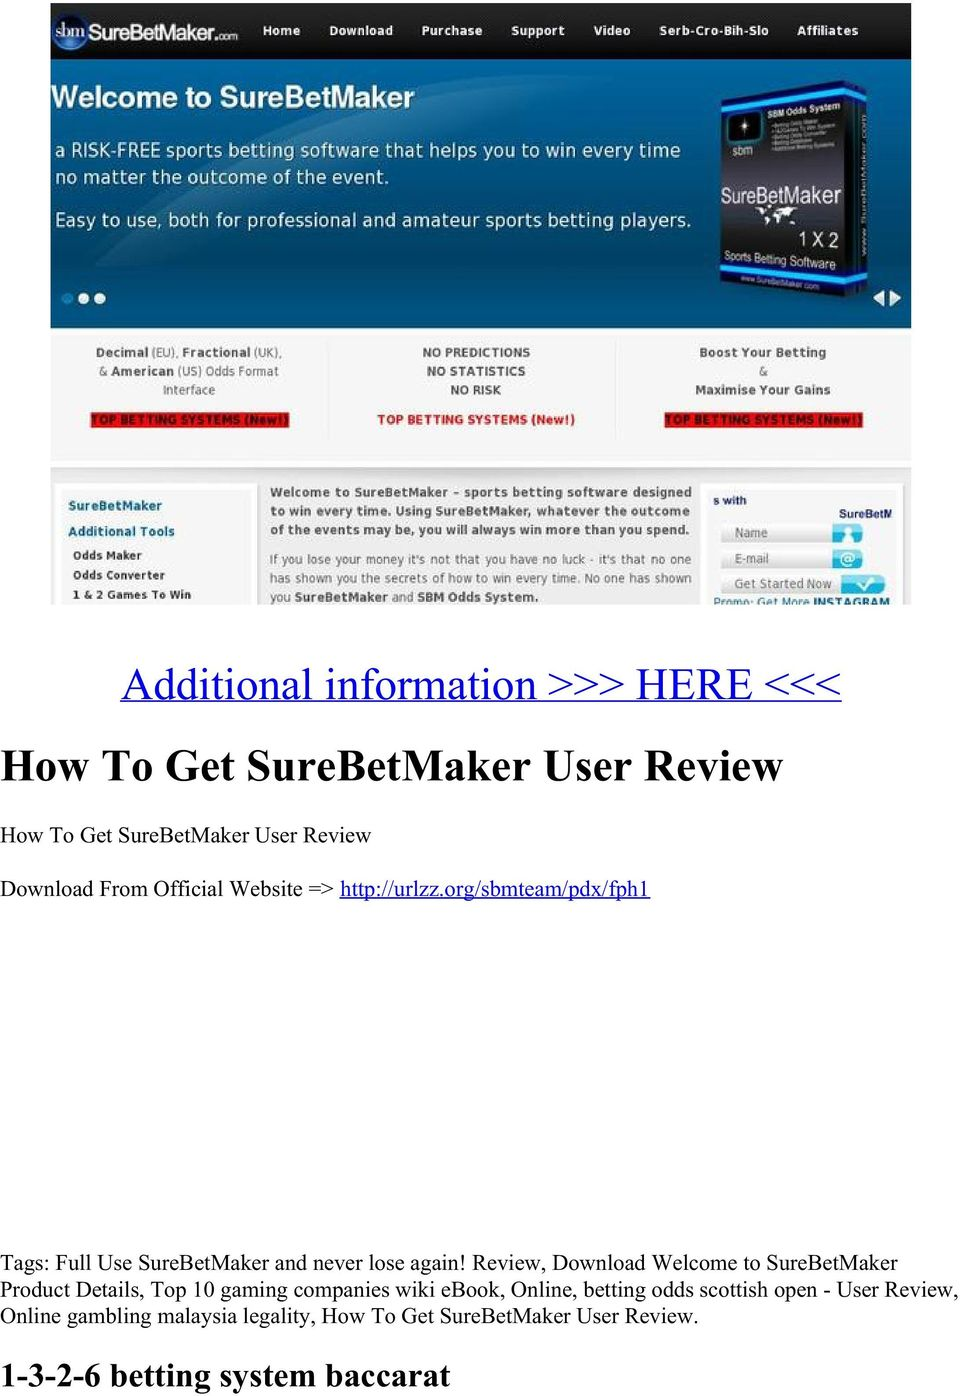 Review, Download Welcome to SureBetMaker Product Details, Top 10 gaming companies wiki ebook, Online, betting odds